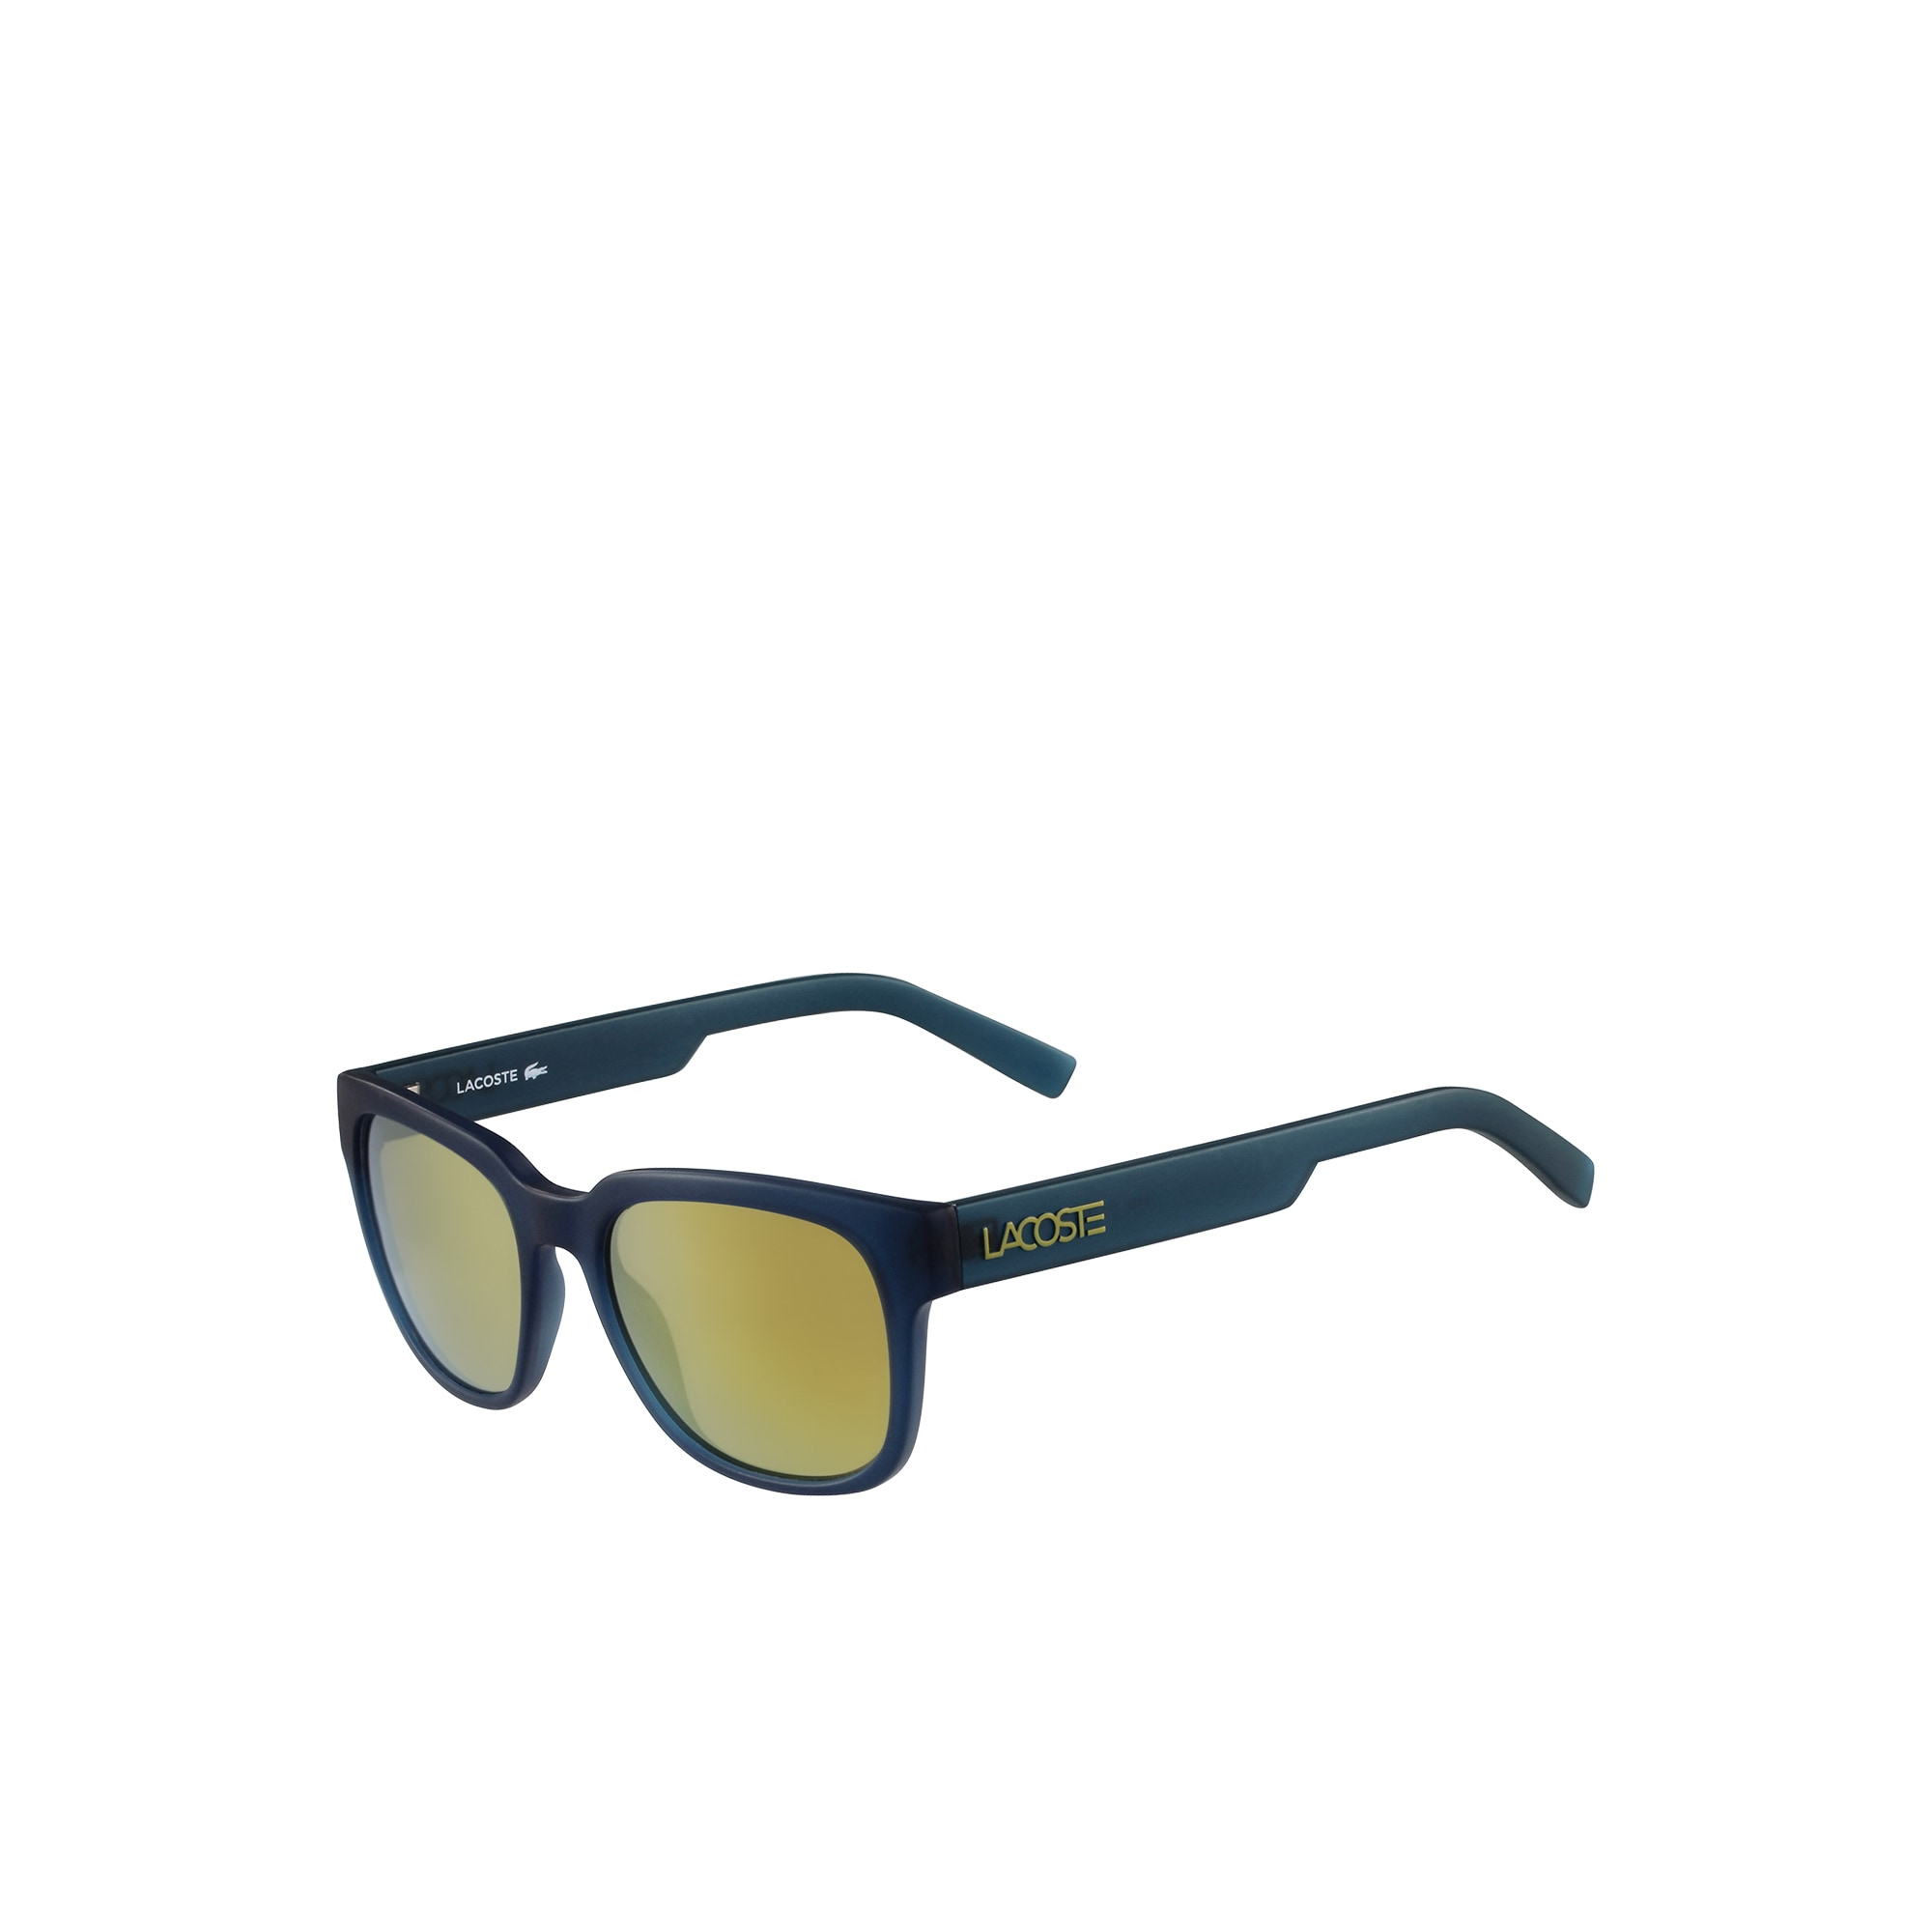 Green Sporty Sunglasses